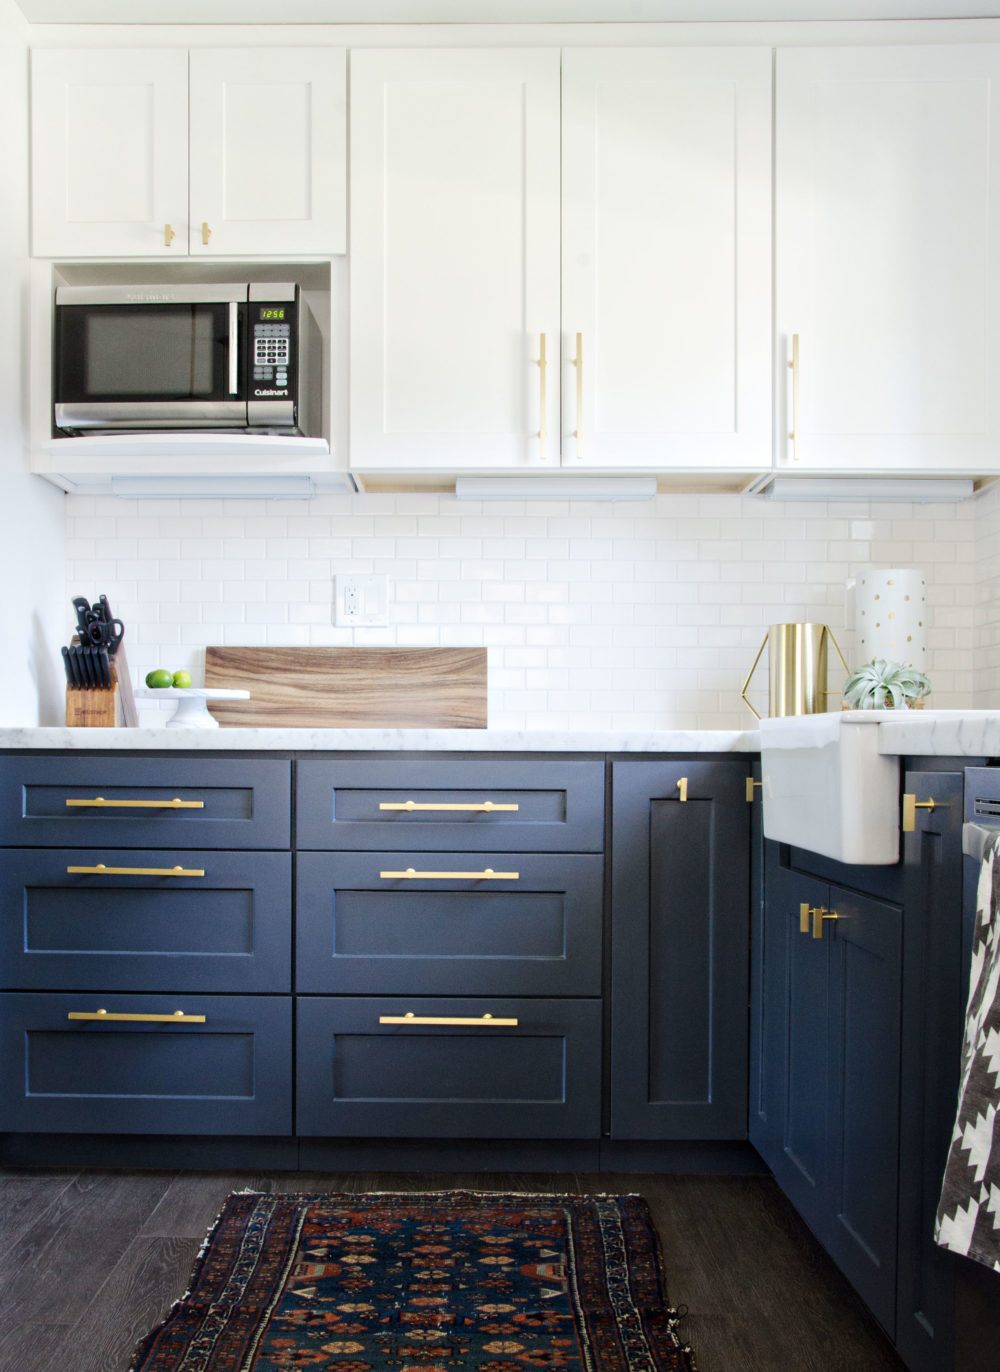 6 ways to use the trendy navy blue and gold color scheme for Navy blue kitchen cabinets